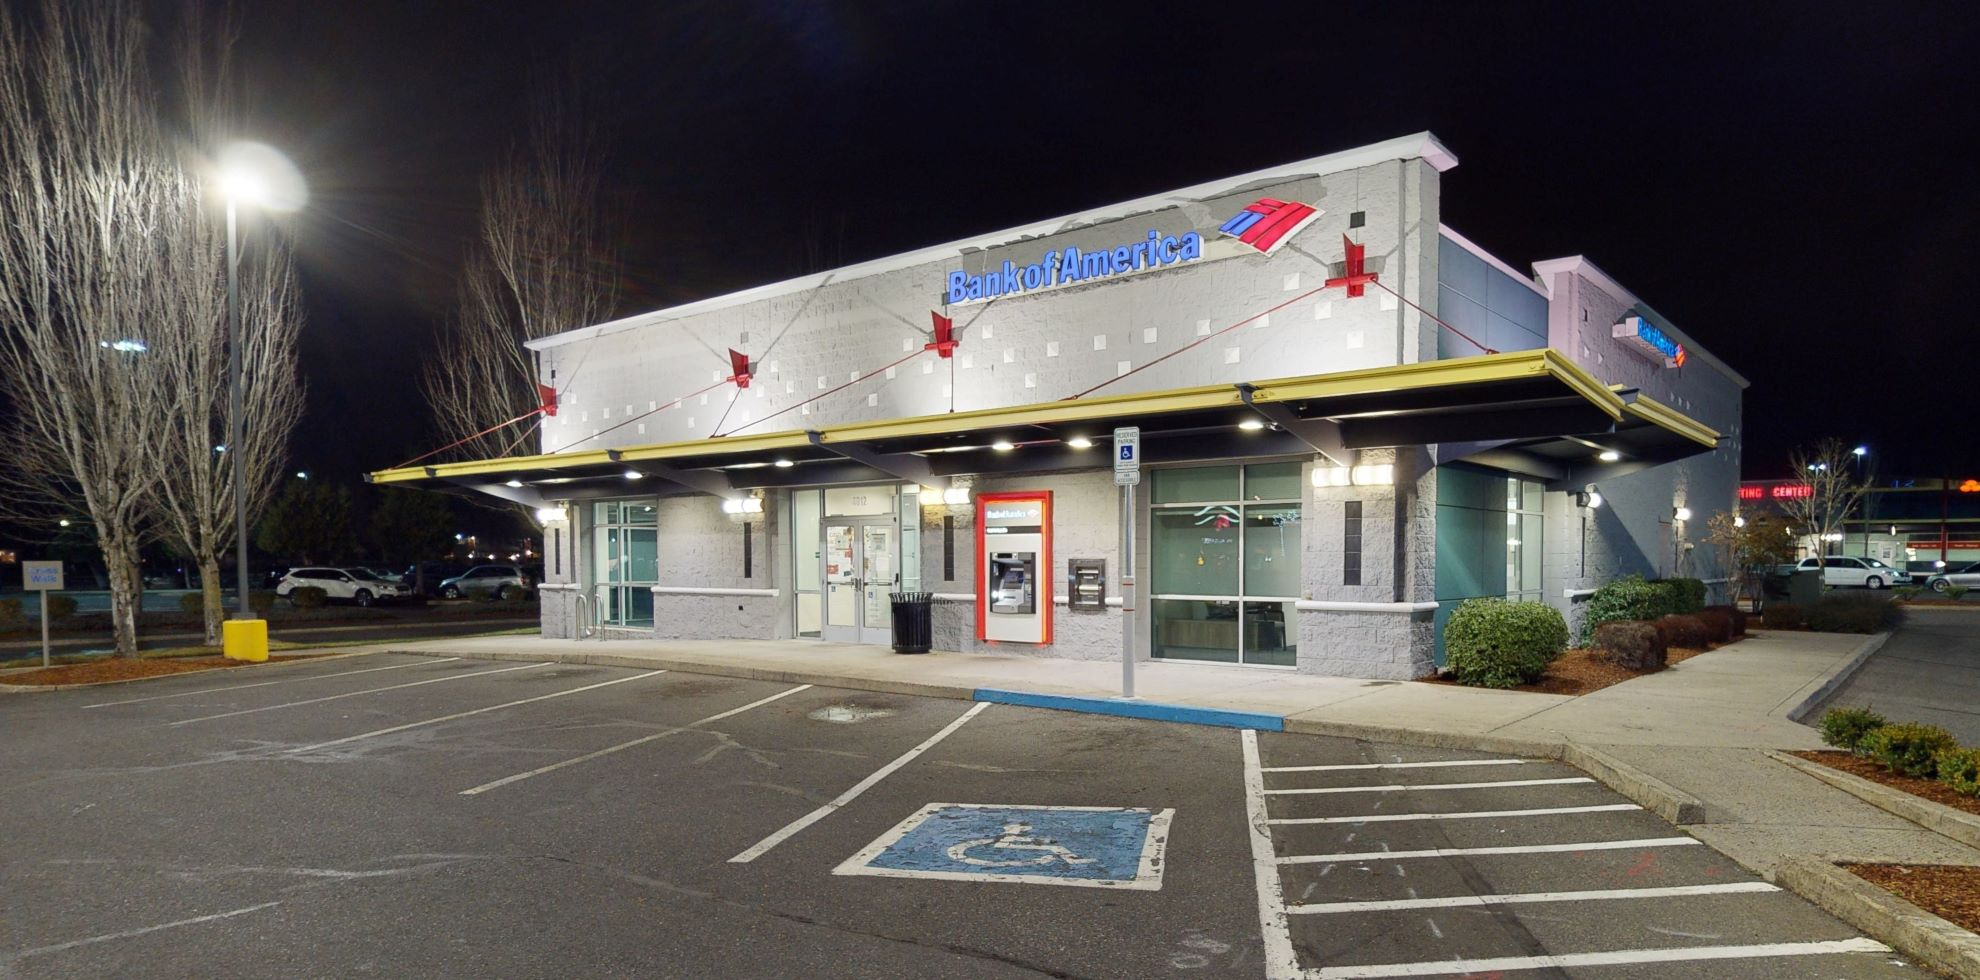 Bank of America financial center with drive-thru ATM   4012 SE 82nd Ave, Portland, OR 97266